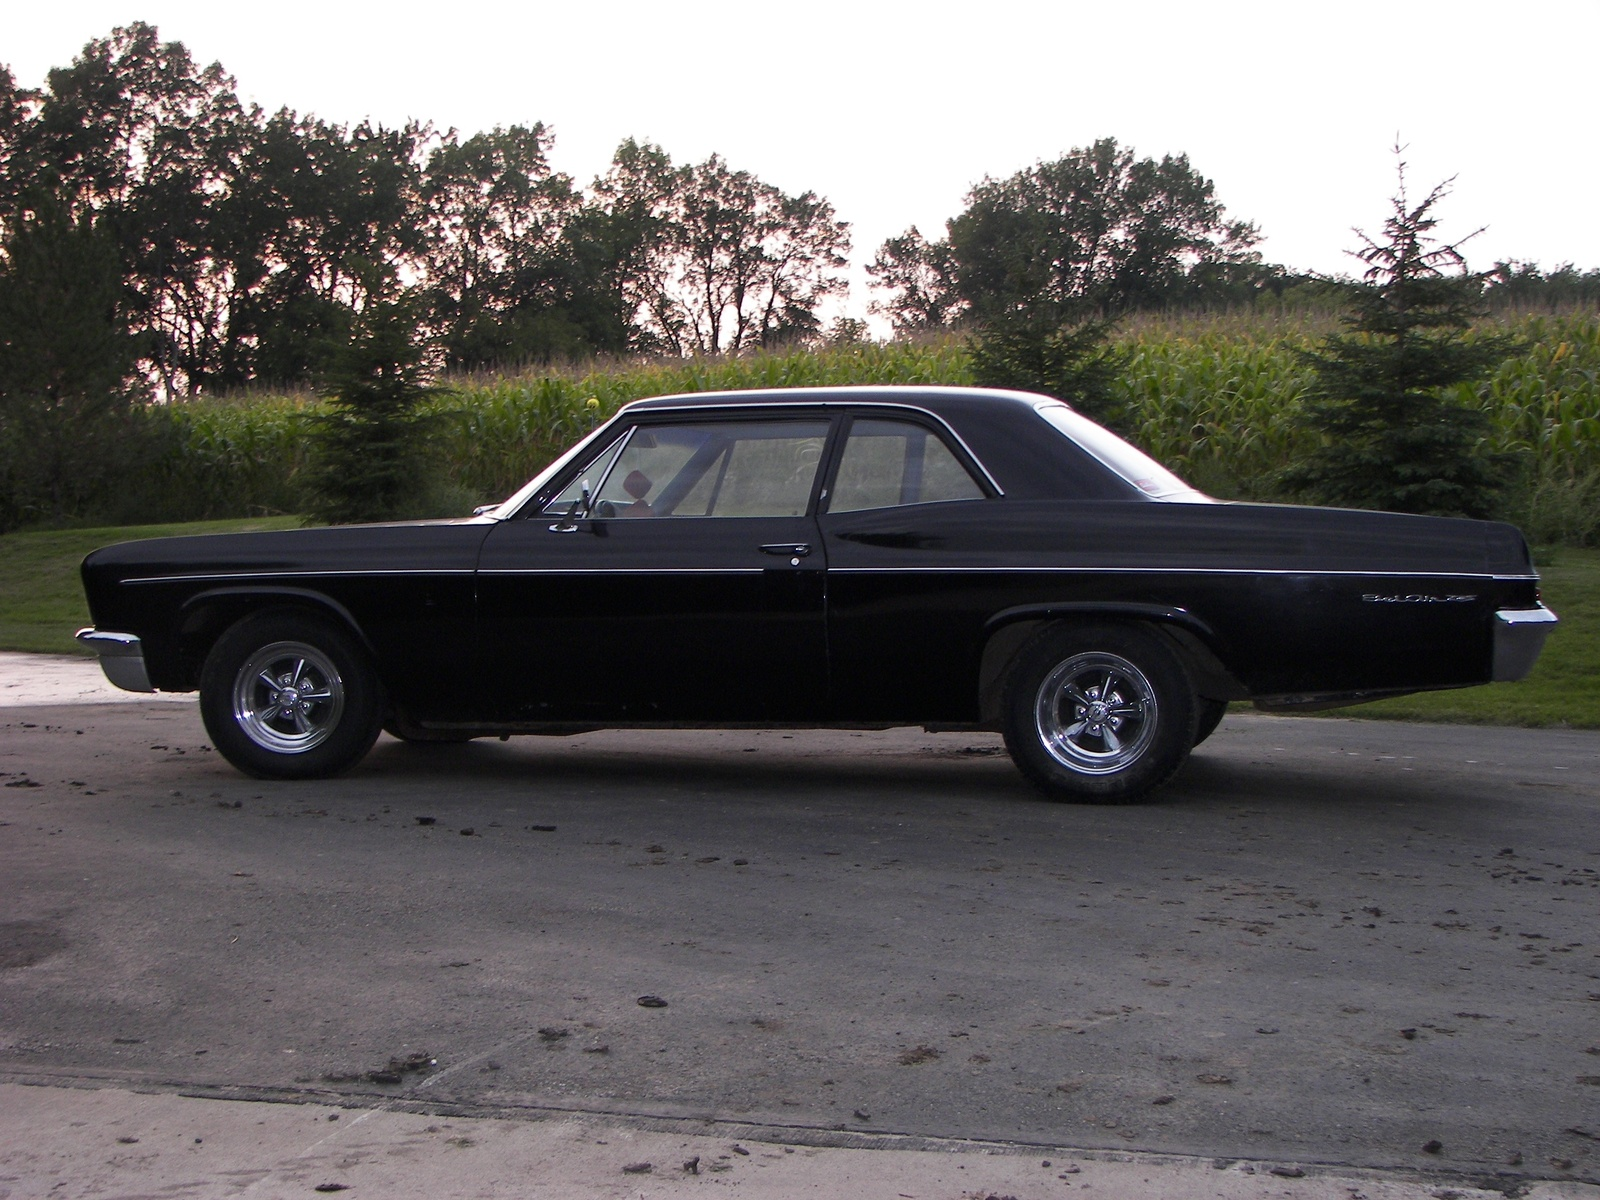 Click image for larger version  Name:1966_chevrolet_bel_air-pic-16353.jpg Views:69 Size:654.1 KB ID:72976